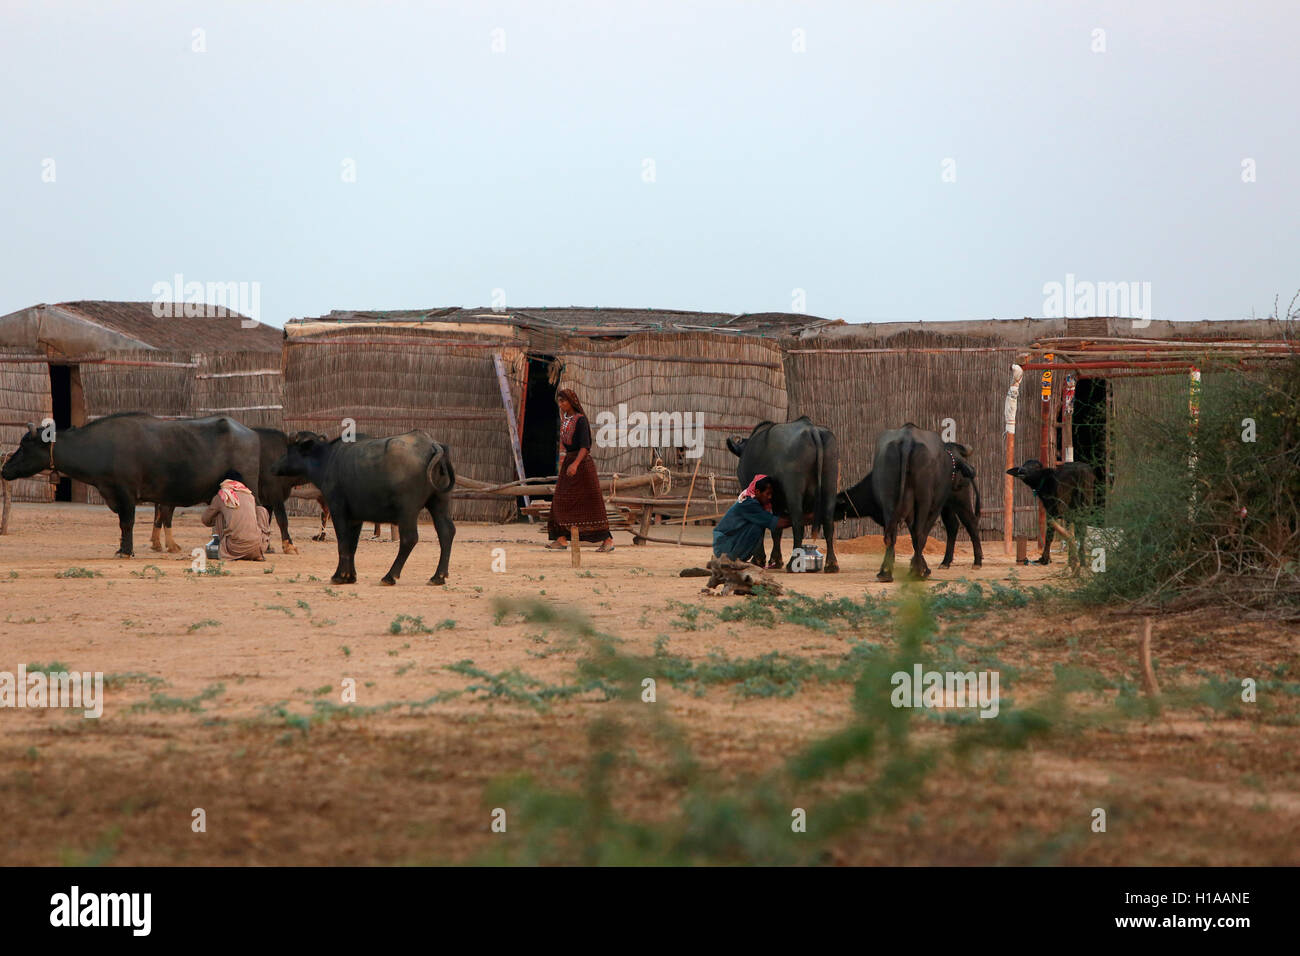 Cattles, Medi Village, Kutch, Gujarat, India - Stock Image